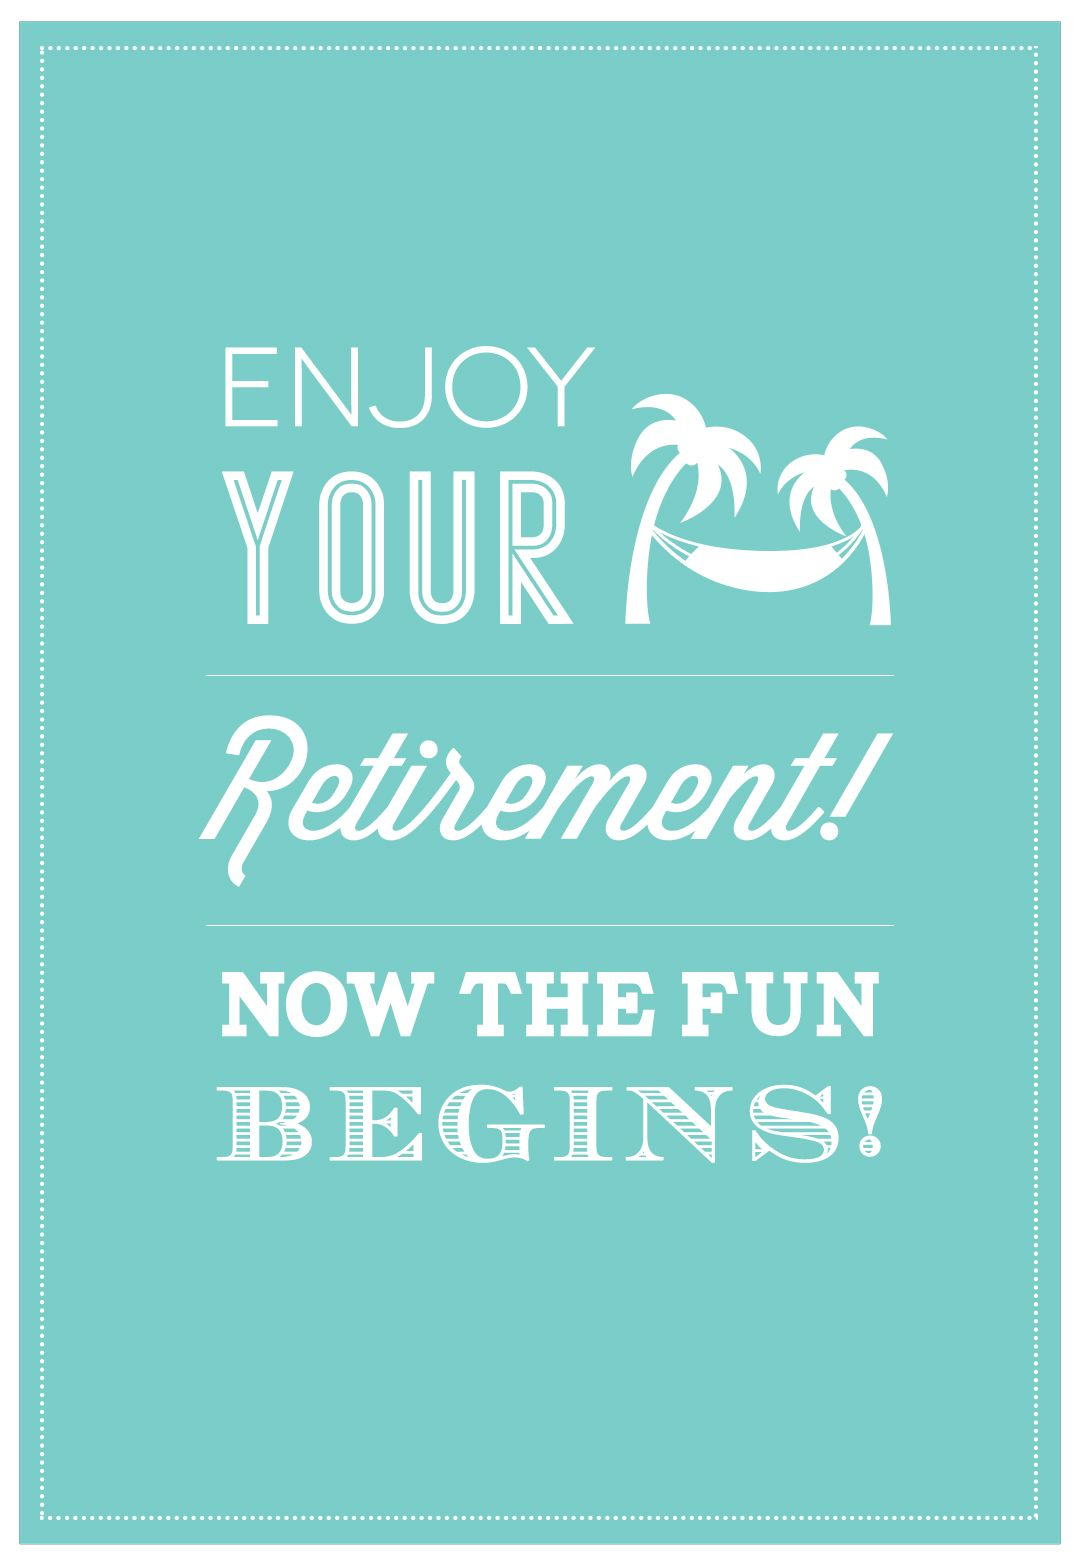 Now The Fun Begins Retirement Card Free Greetings Island Retirement Cards Card Templates Free Birthday Cards For Her